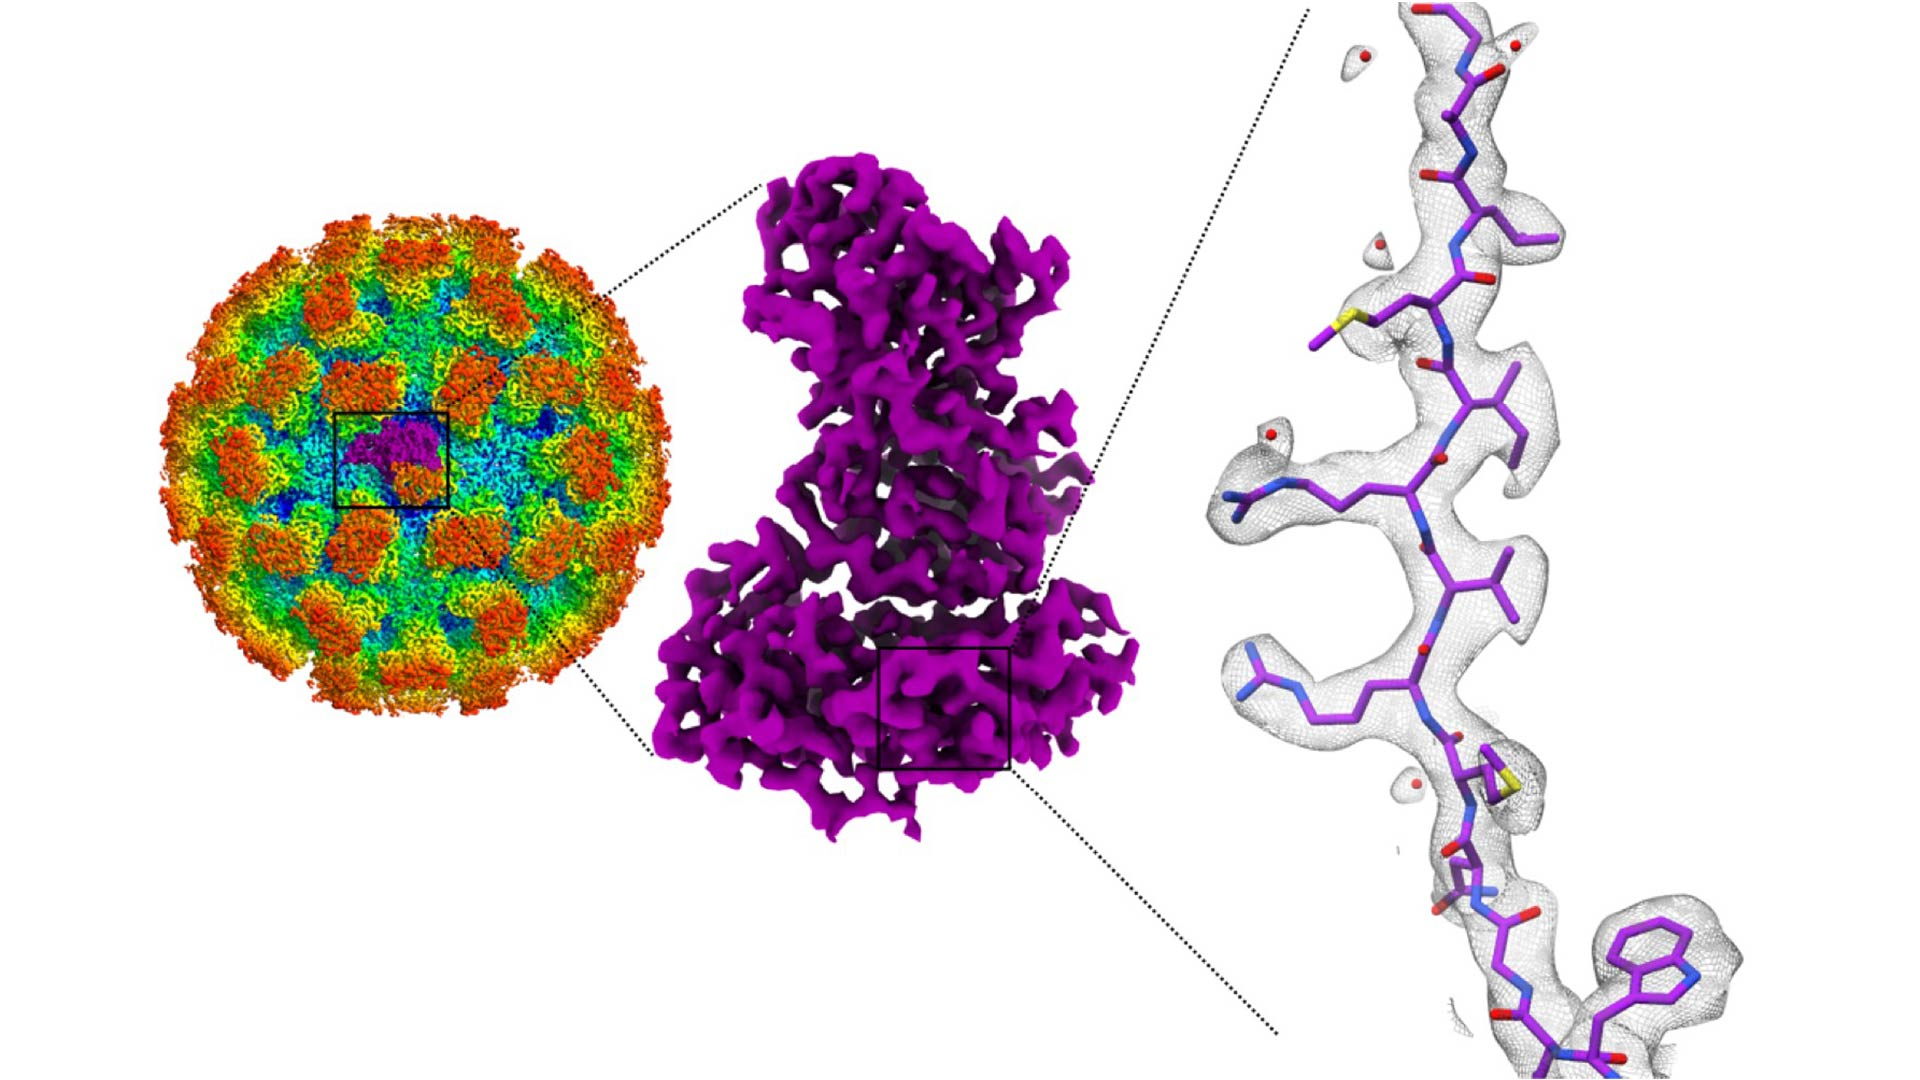 image of norovirus structure